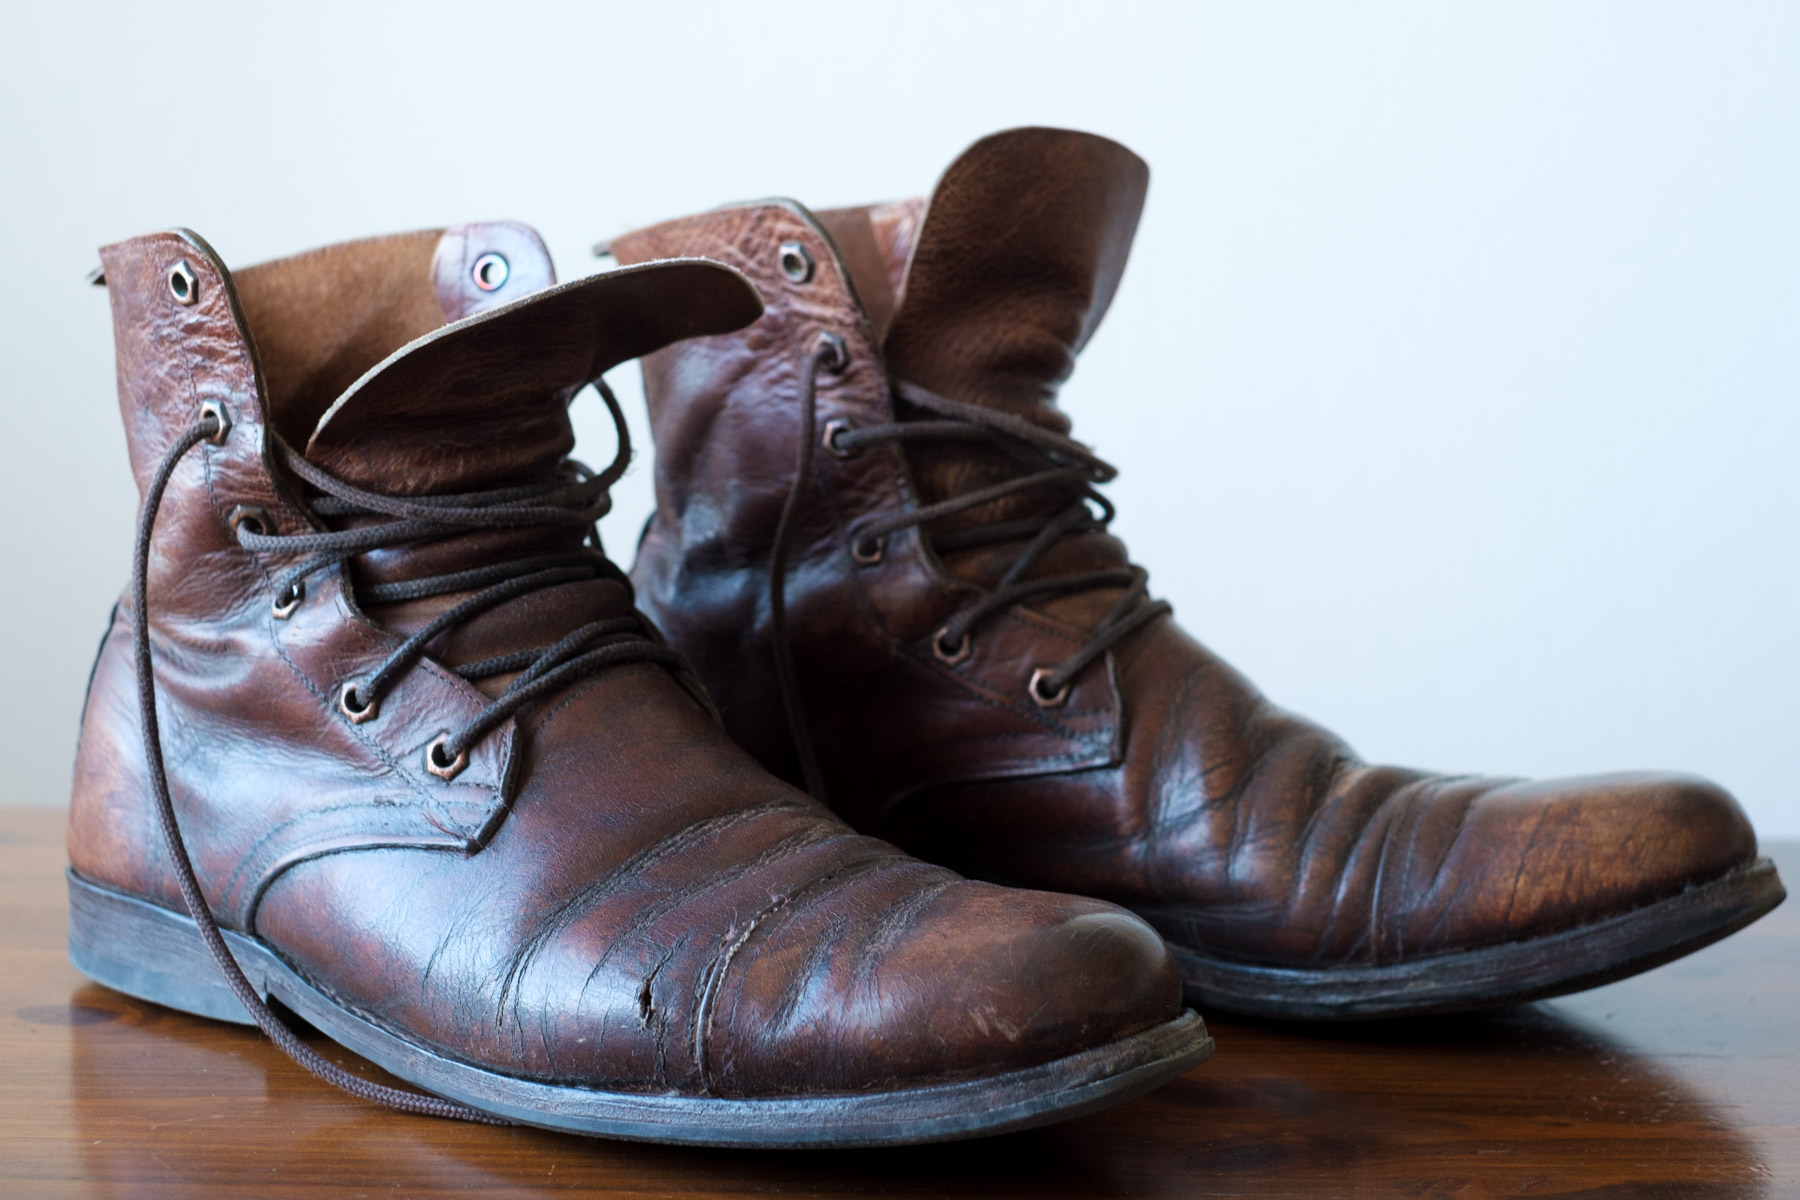 """Featured image for """"My Custom Handmade Boots from Guatemala"""""""